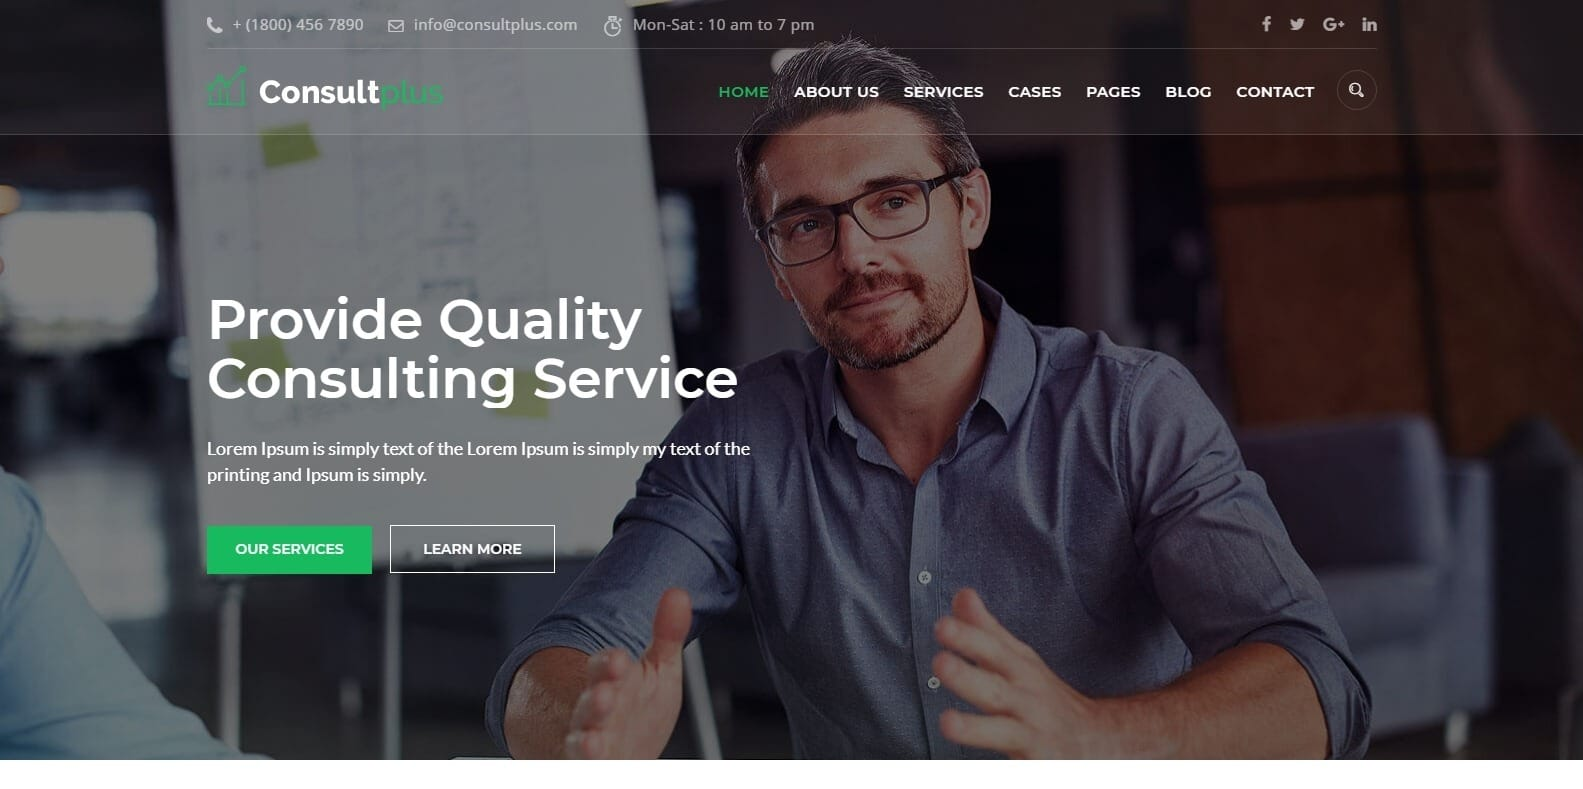 consultplus-consulting-website-template